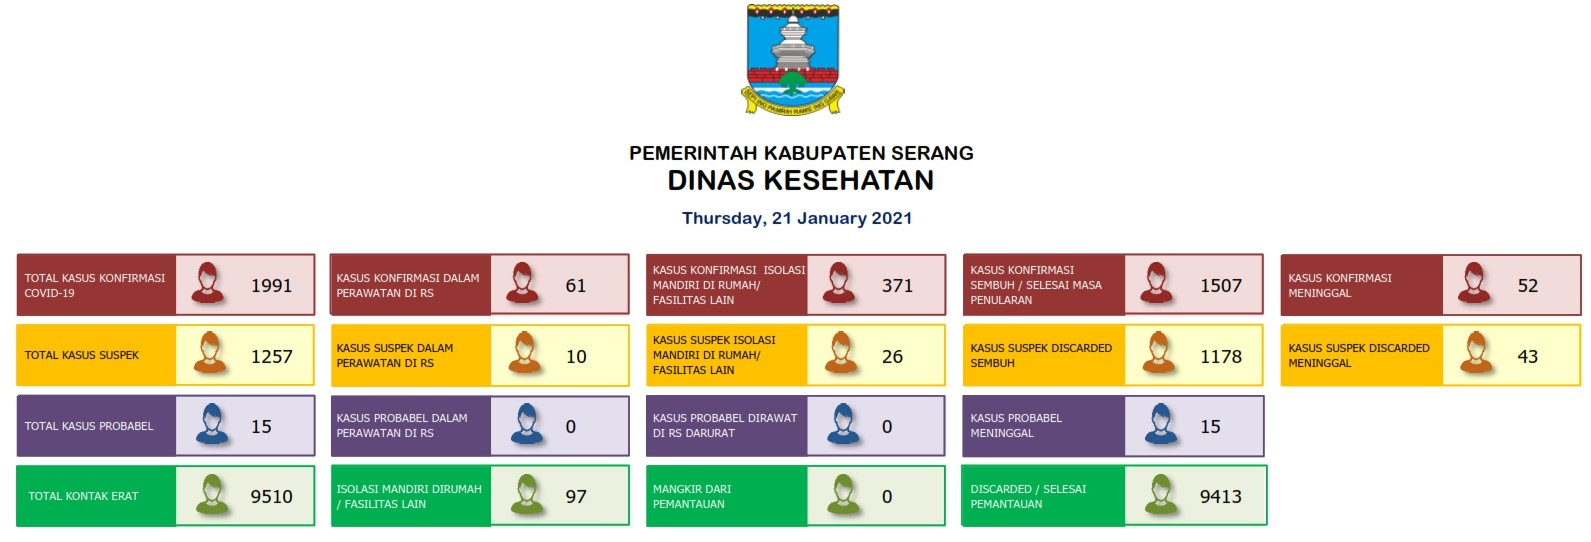 21012021 SERANG DISTRICT REPORT 001